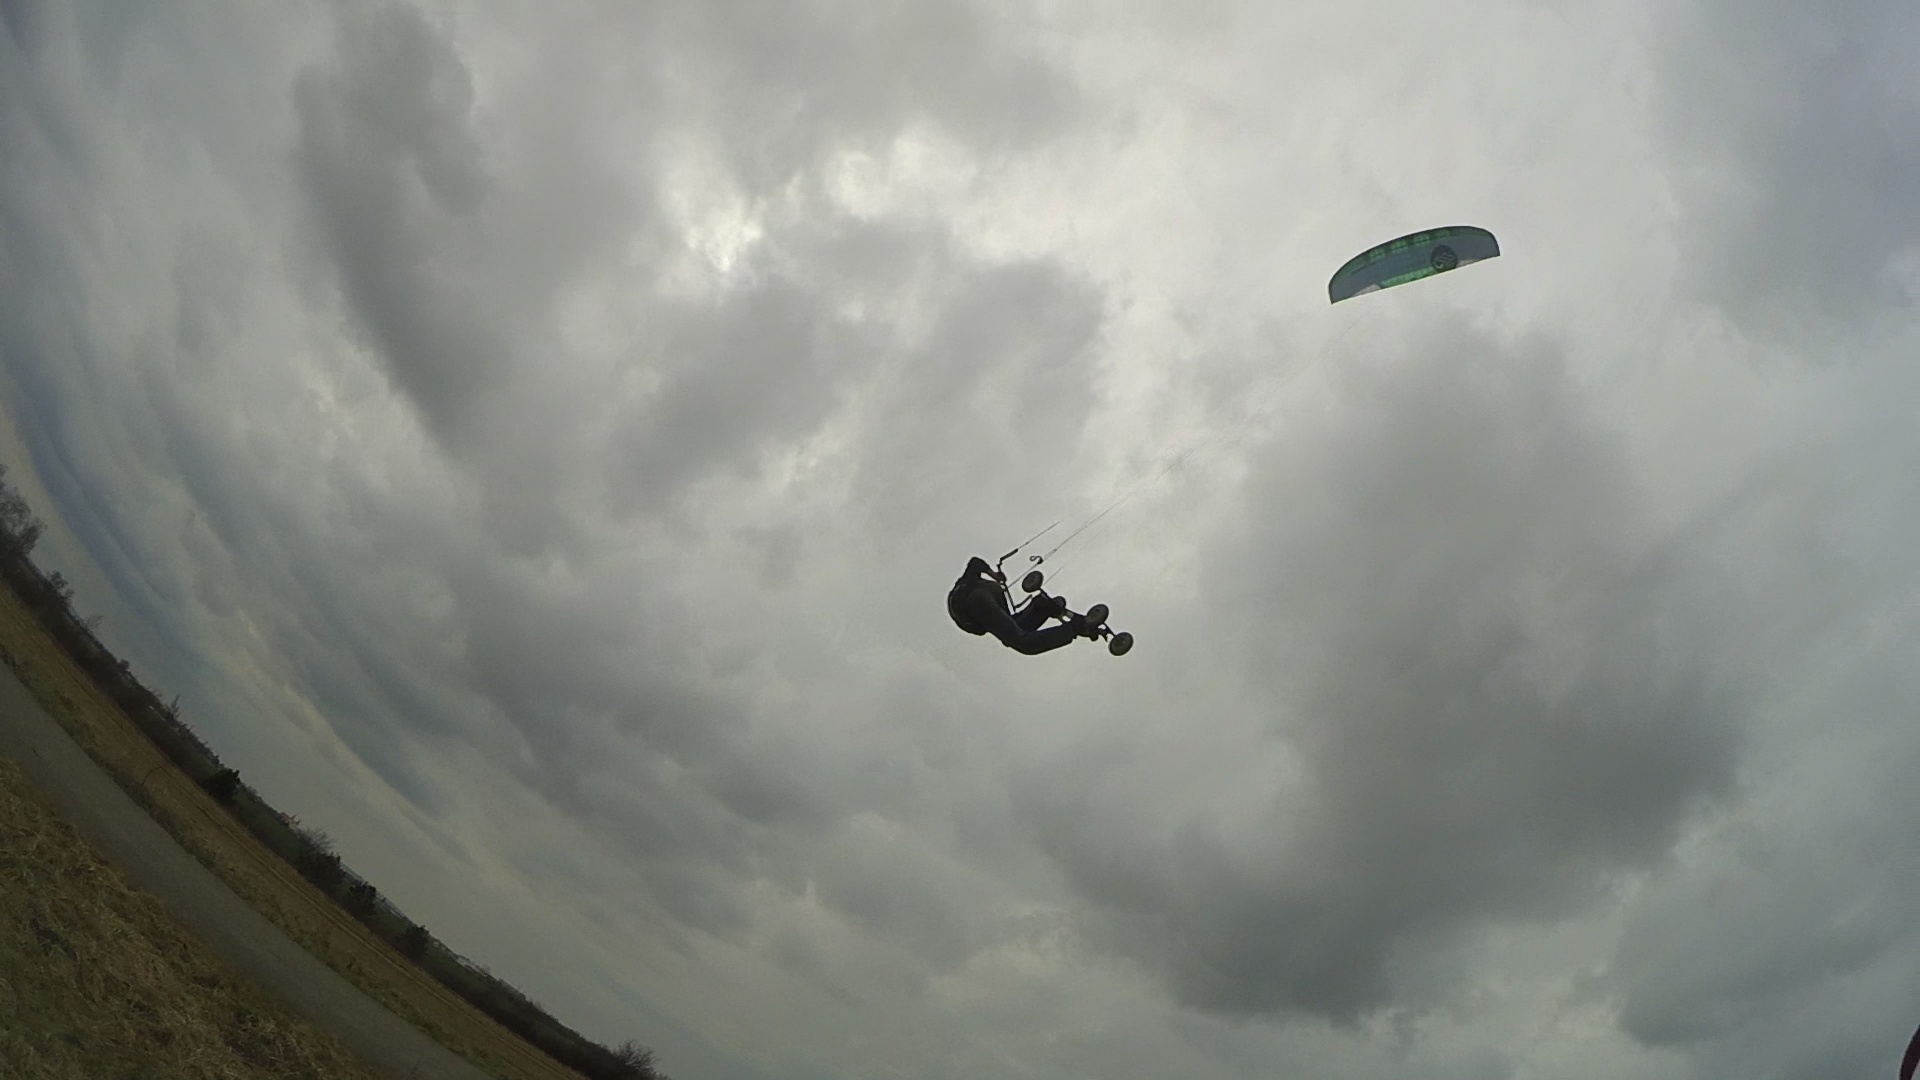 kite-Flysurfer-Soul-test-freestyle.jpg